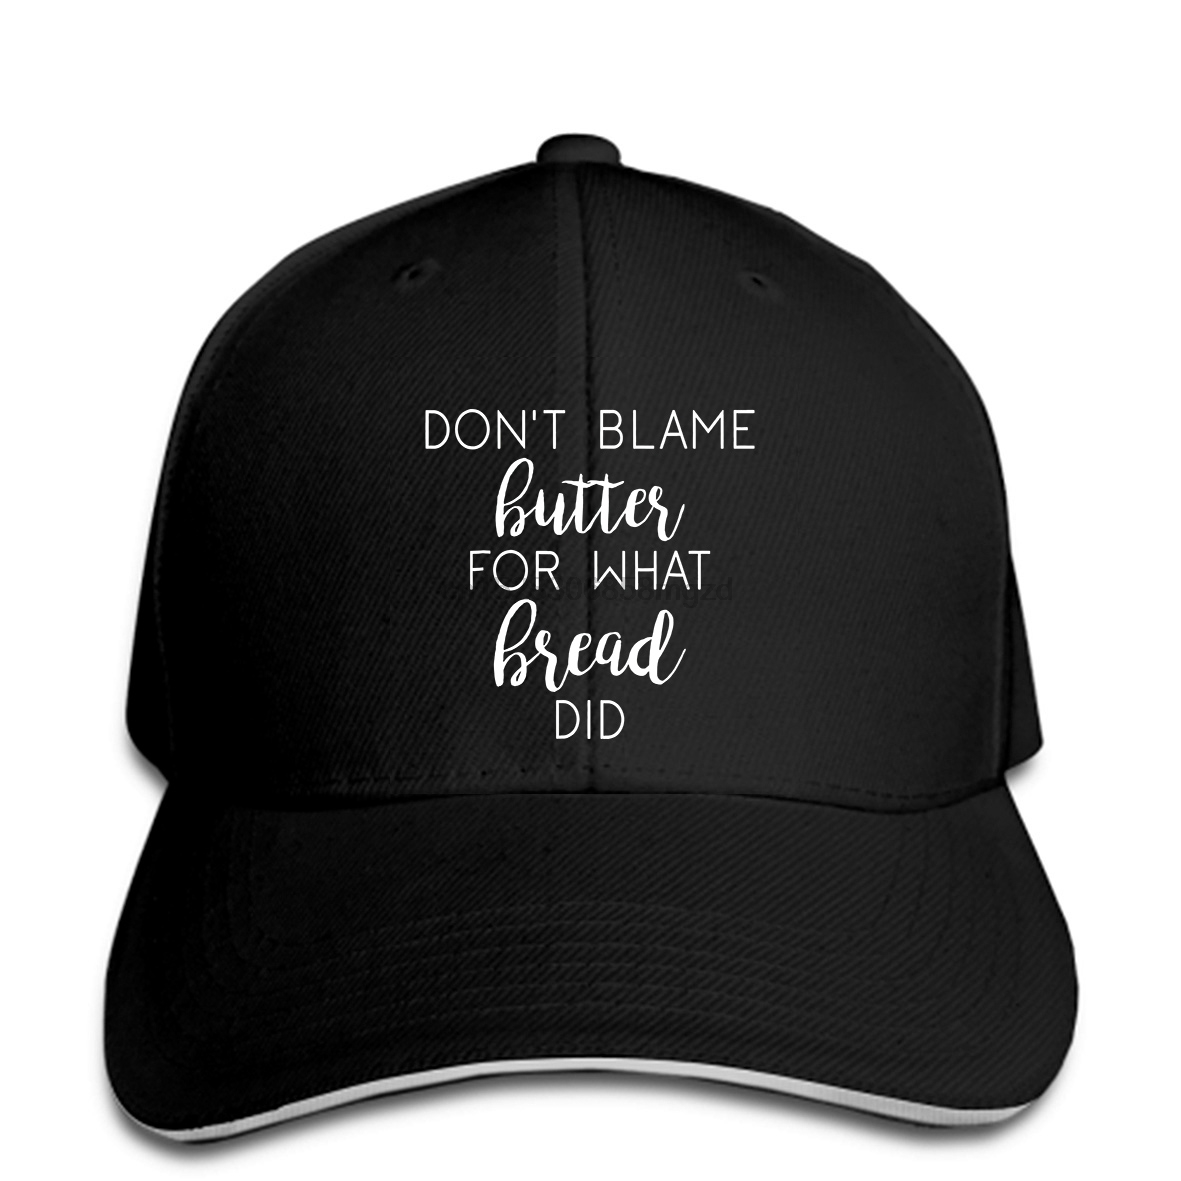 Don't Blame Butter For What Bread Did Funny Keto Diet Ketosis Cool Casual pride Men Baseball Cap men Unisex Fashion Snapback Cap